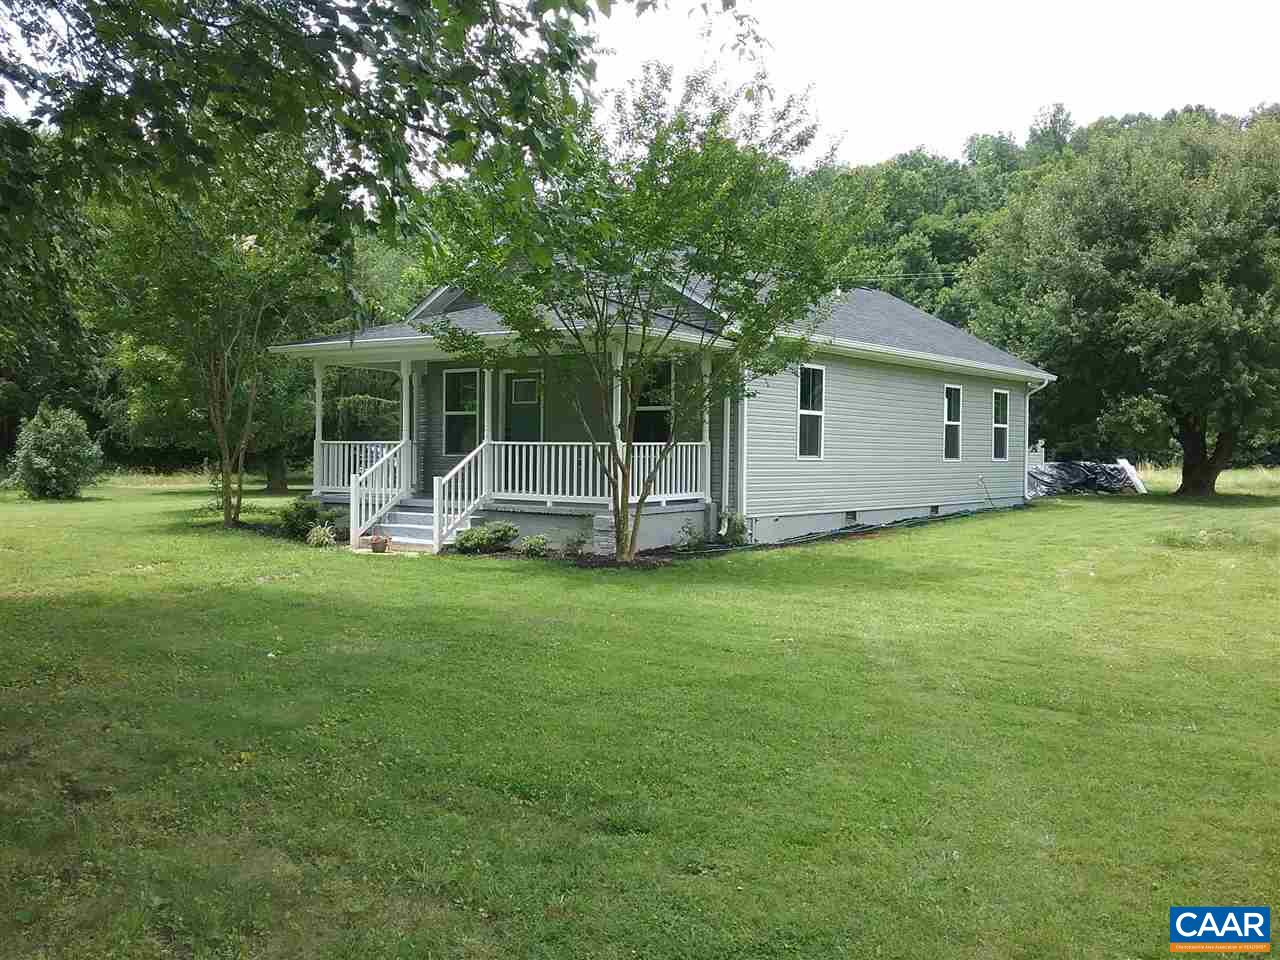 home for sale , MLS #577067, 2221 Crabtree Falls Hwy